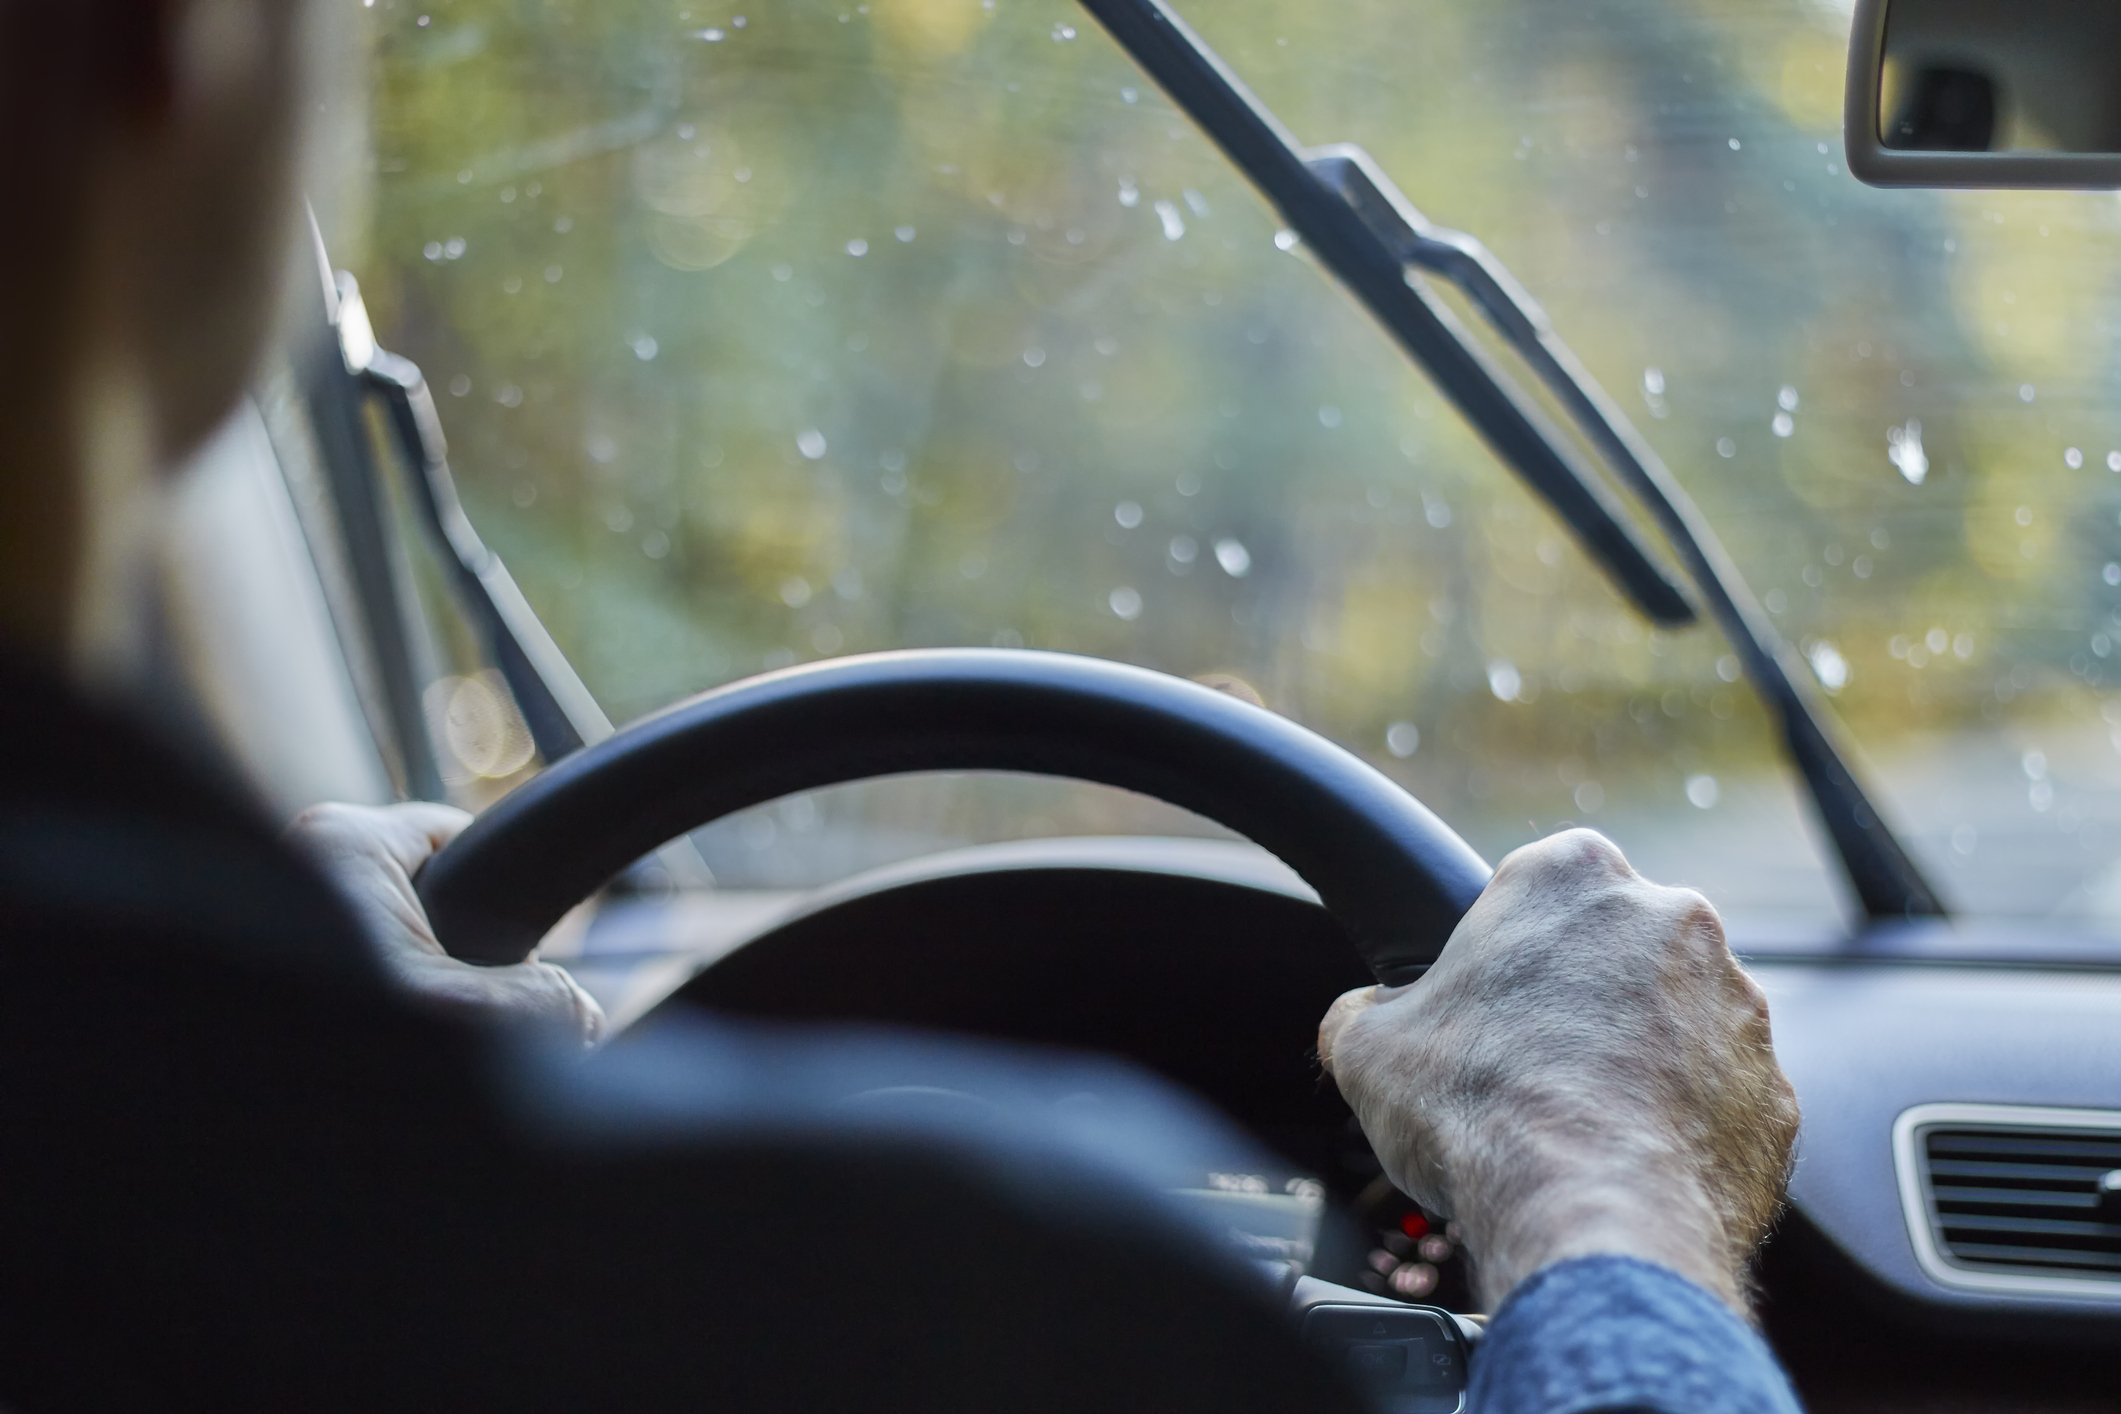 Protect Your Health By Sanitizing Your Vehicle